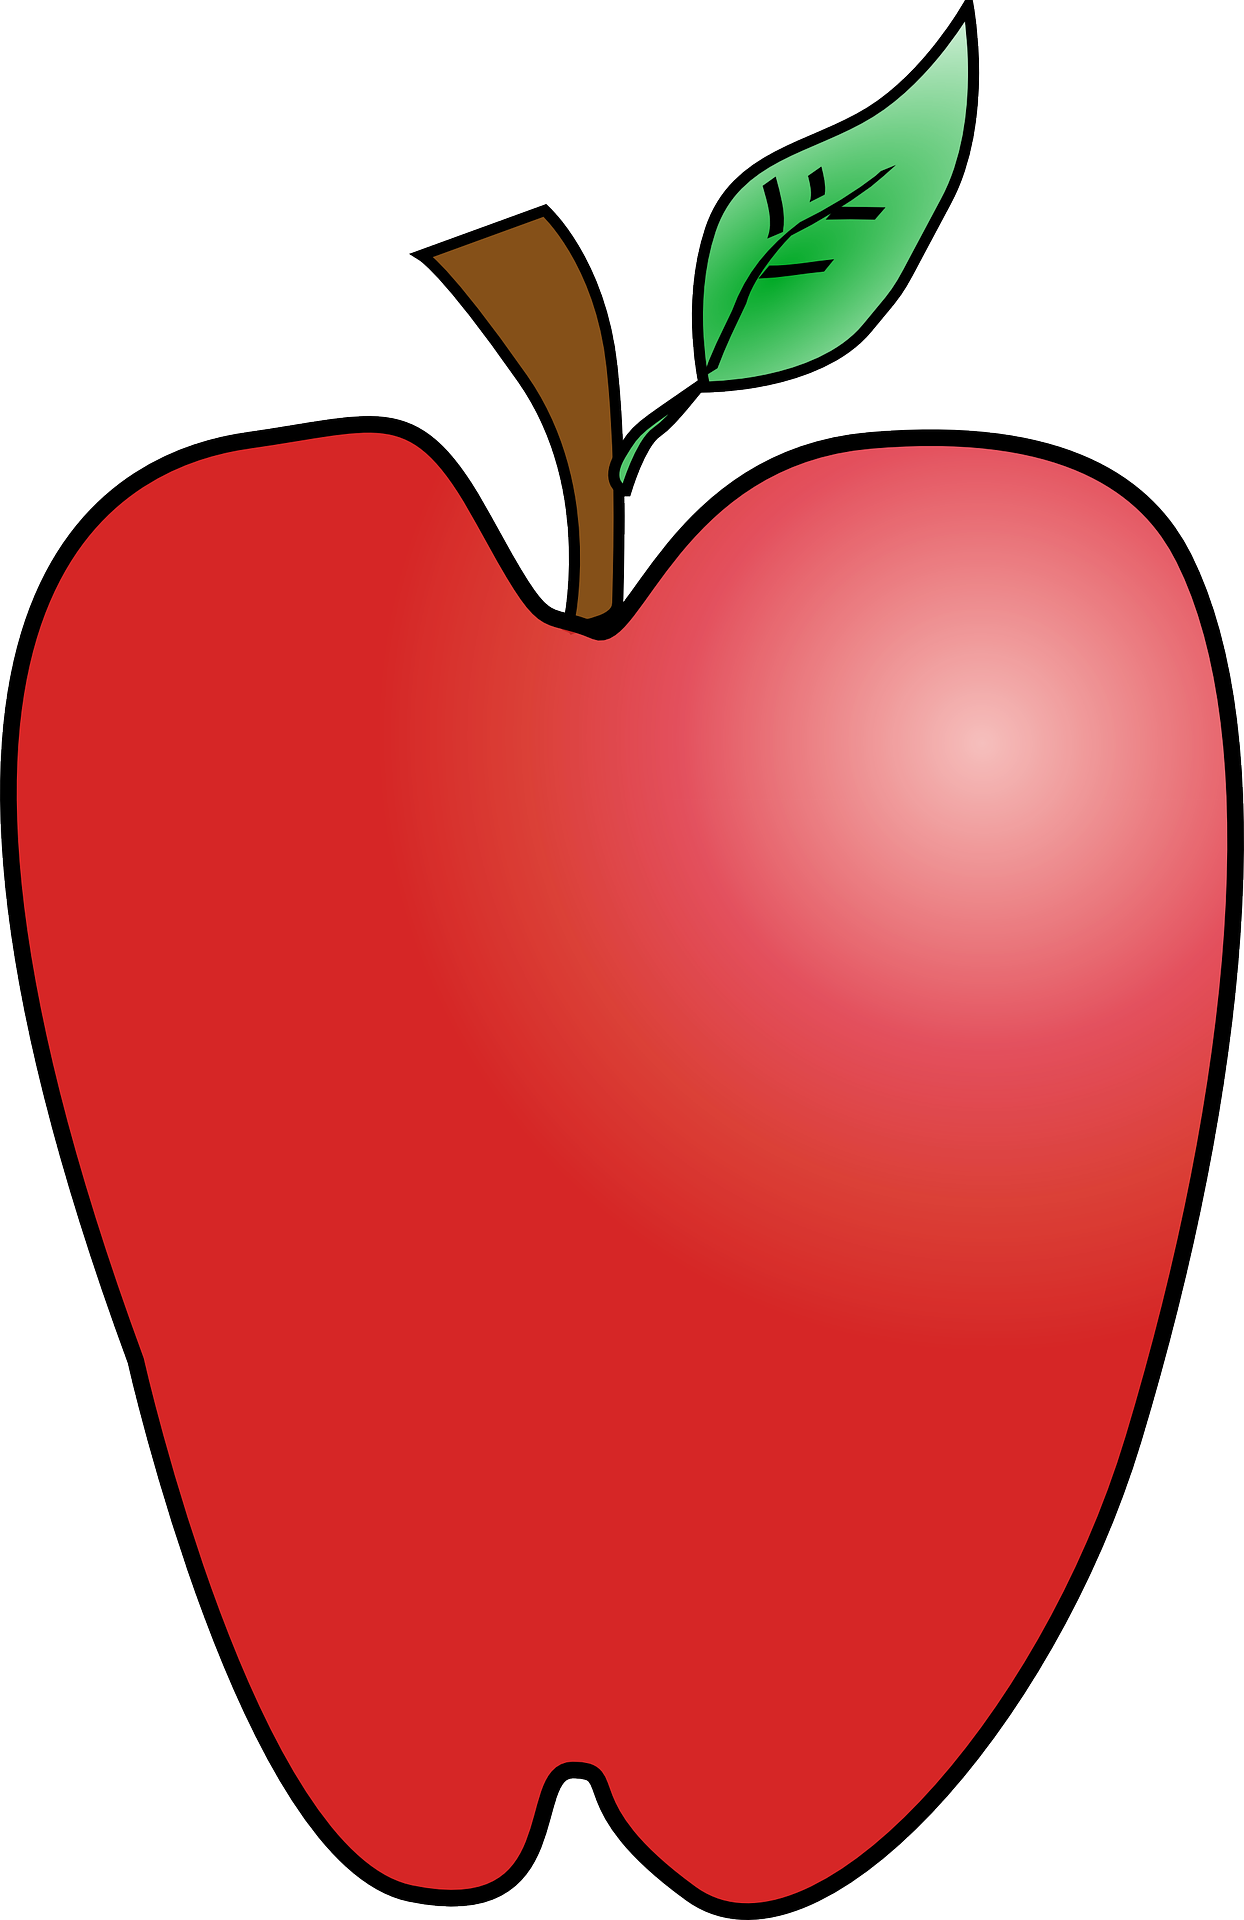 Drawing apple red. Clip art transprent png